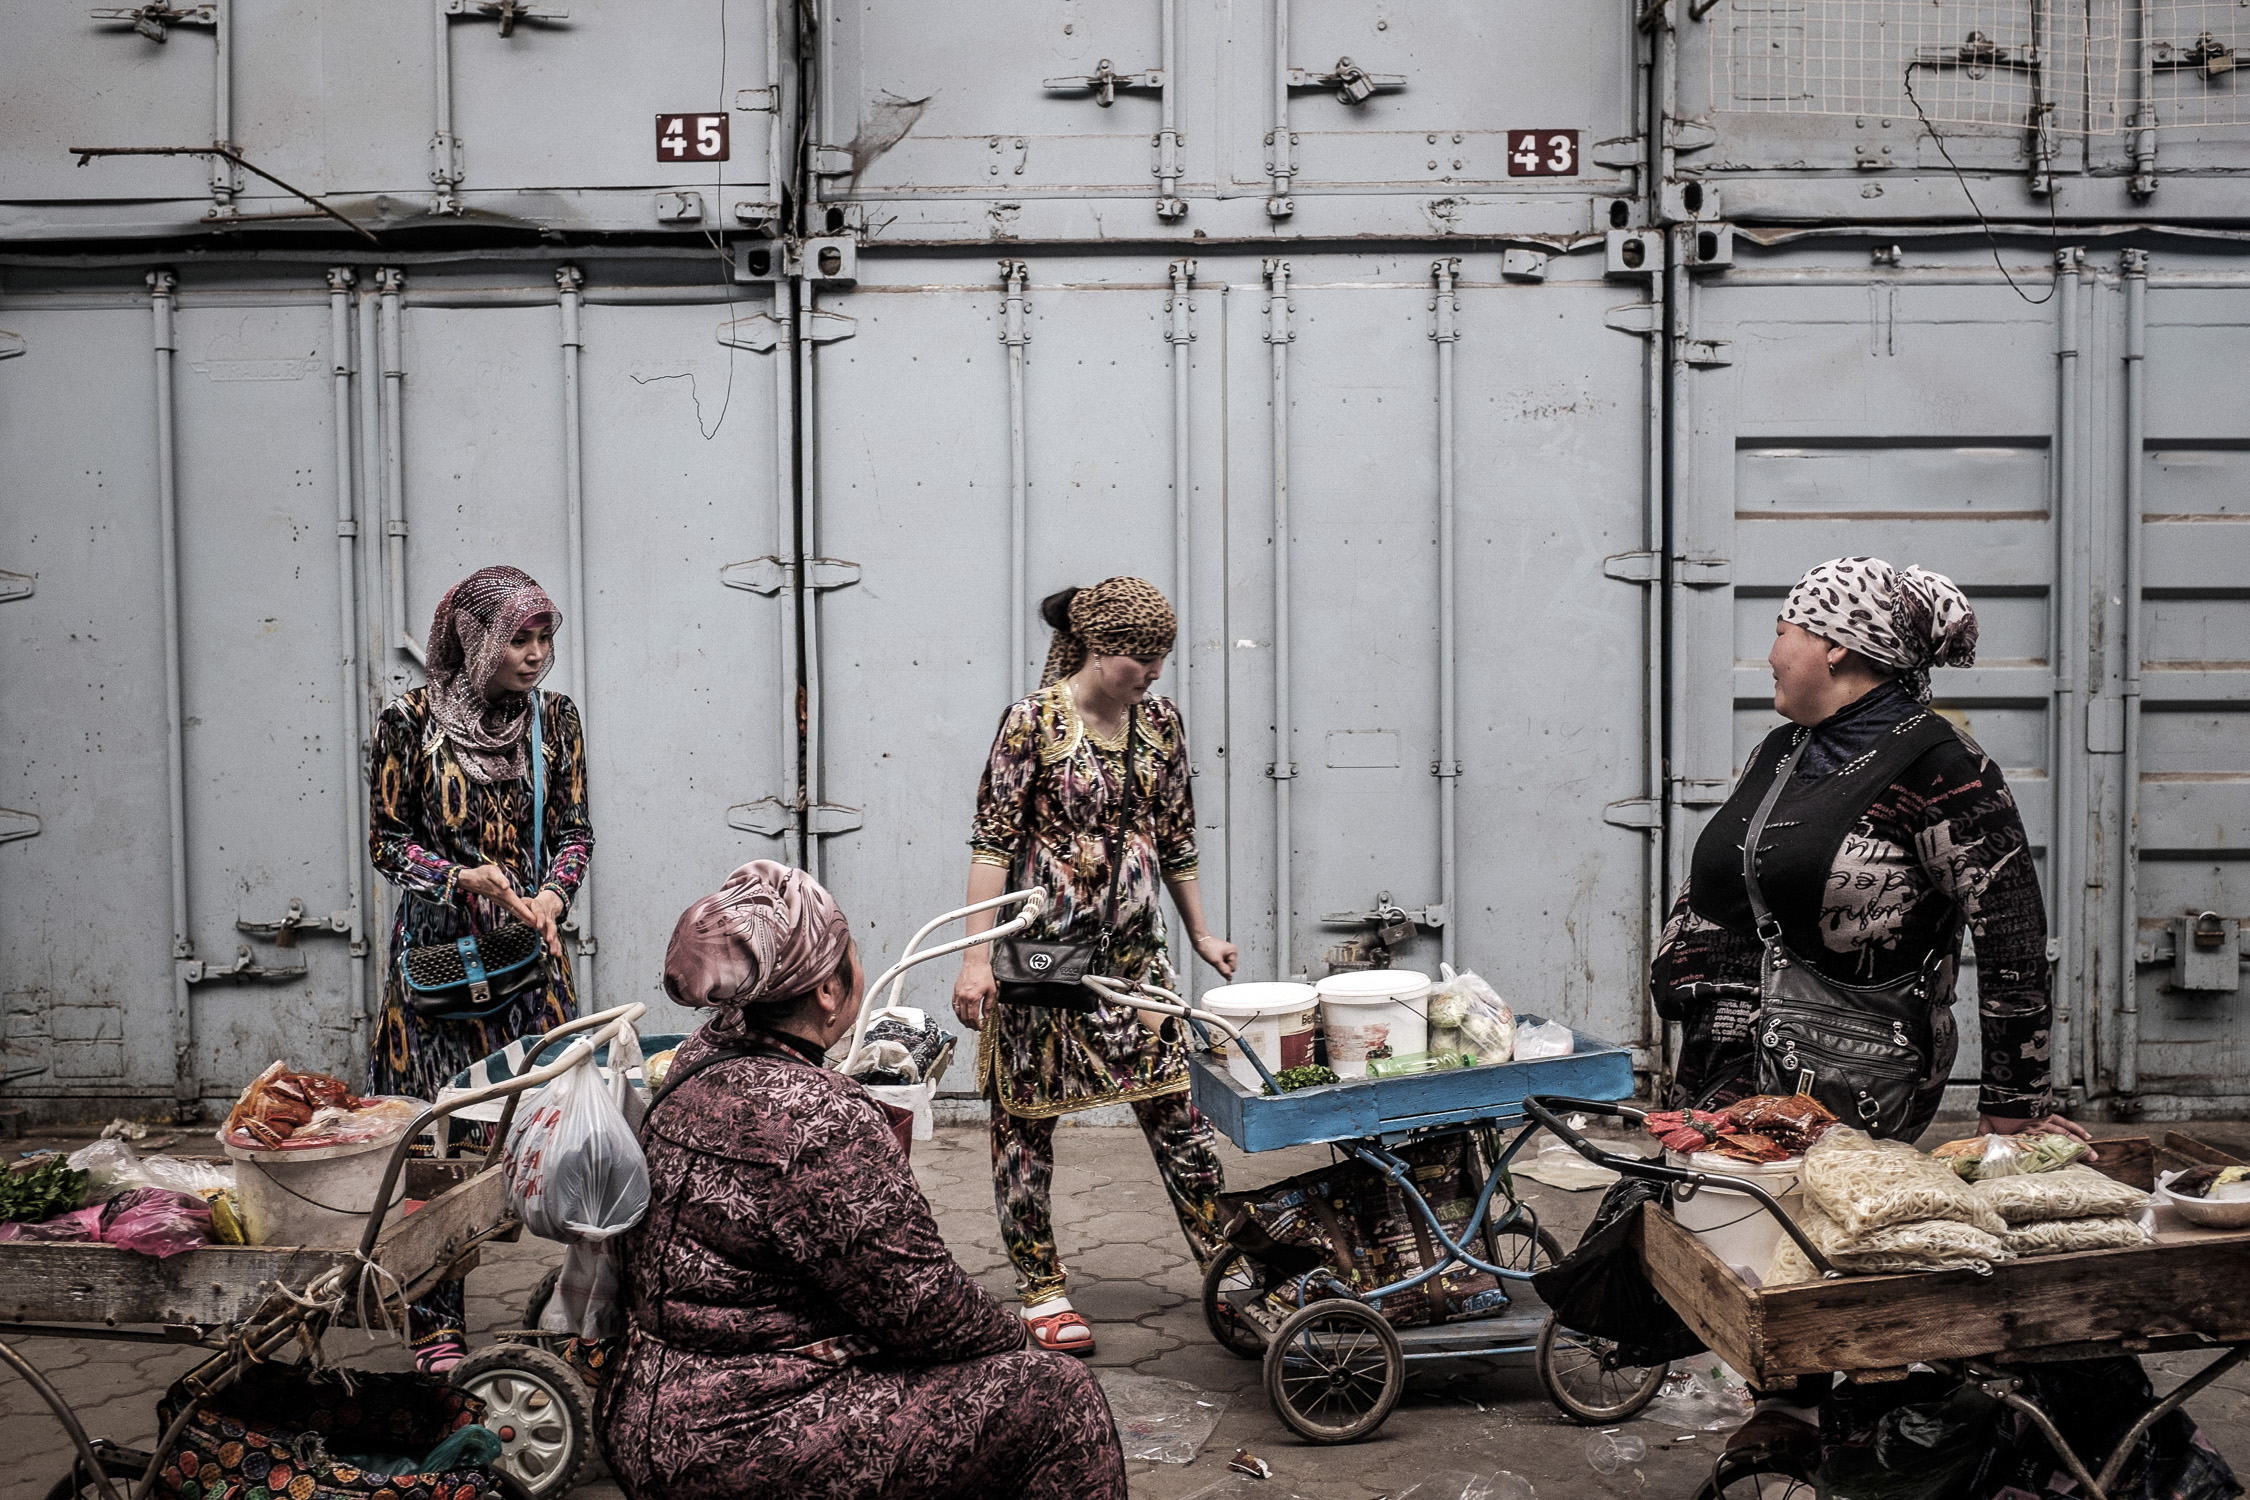 Dungan women sell local fast food, mostly lagman, manty and ashlan foo in Dordoi's main alley in Bishkek. (Photo: Tamas Paczai)